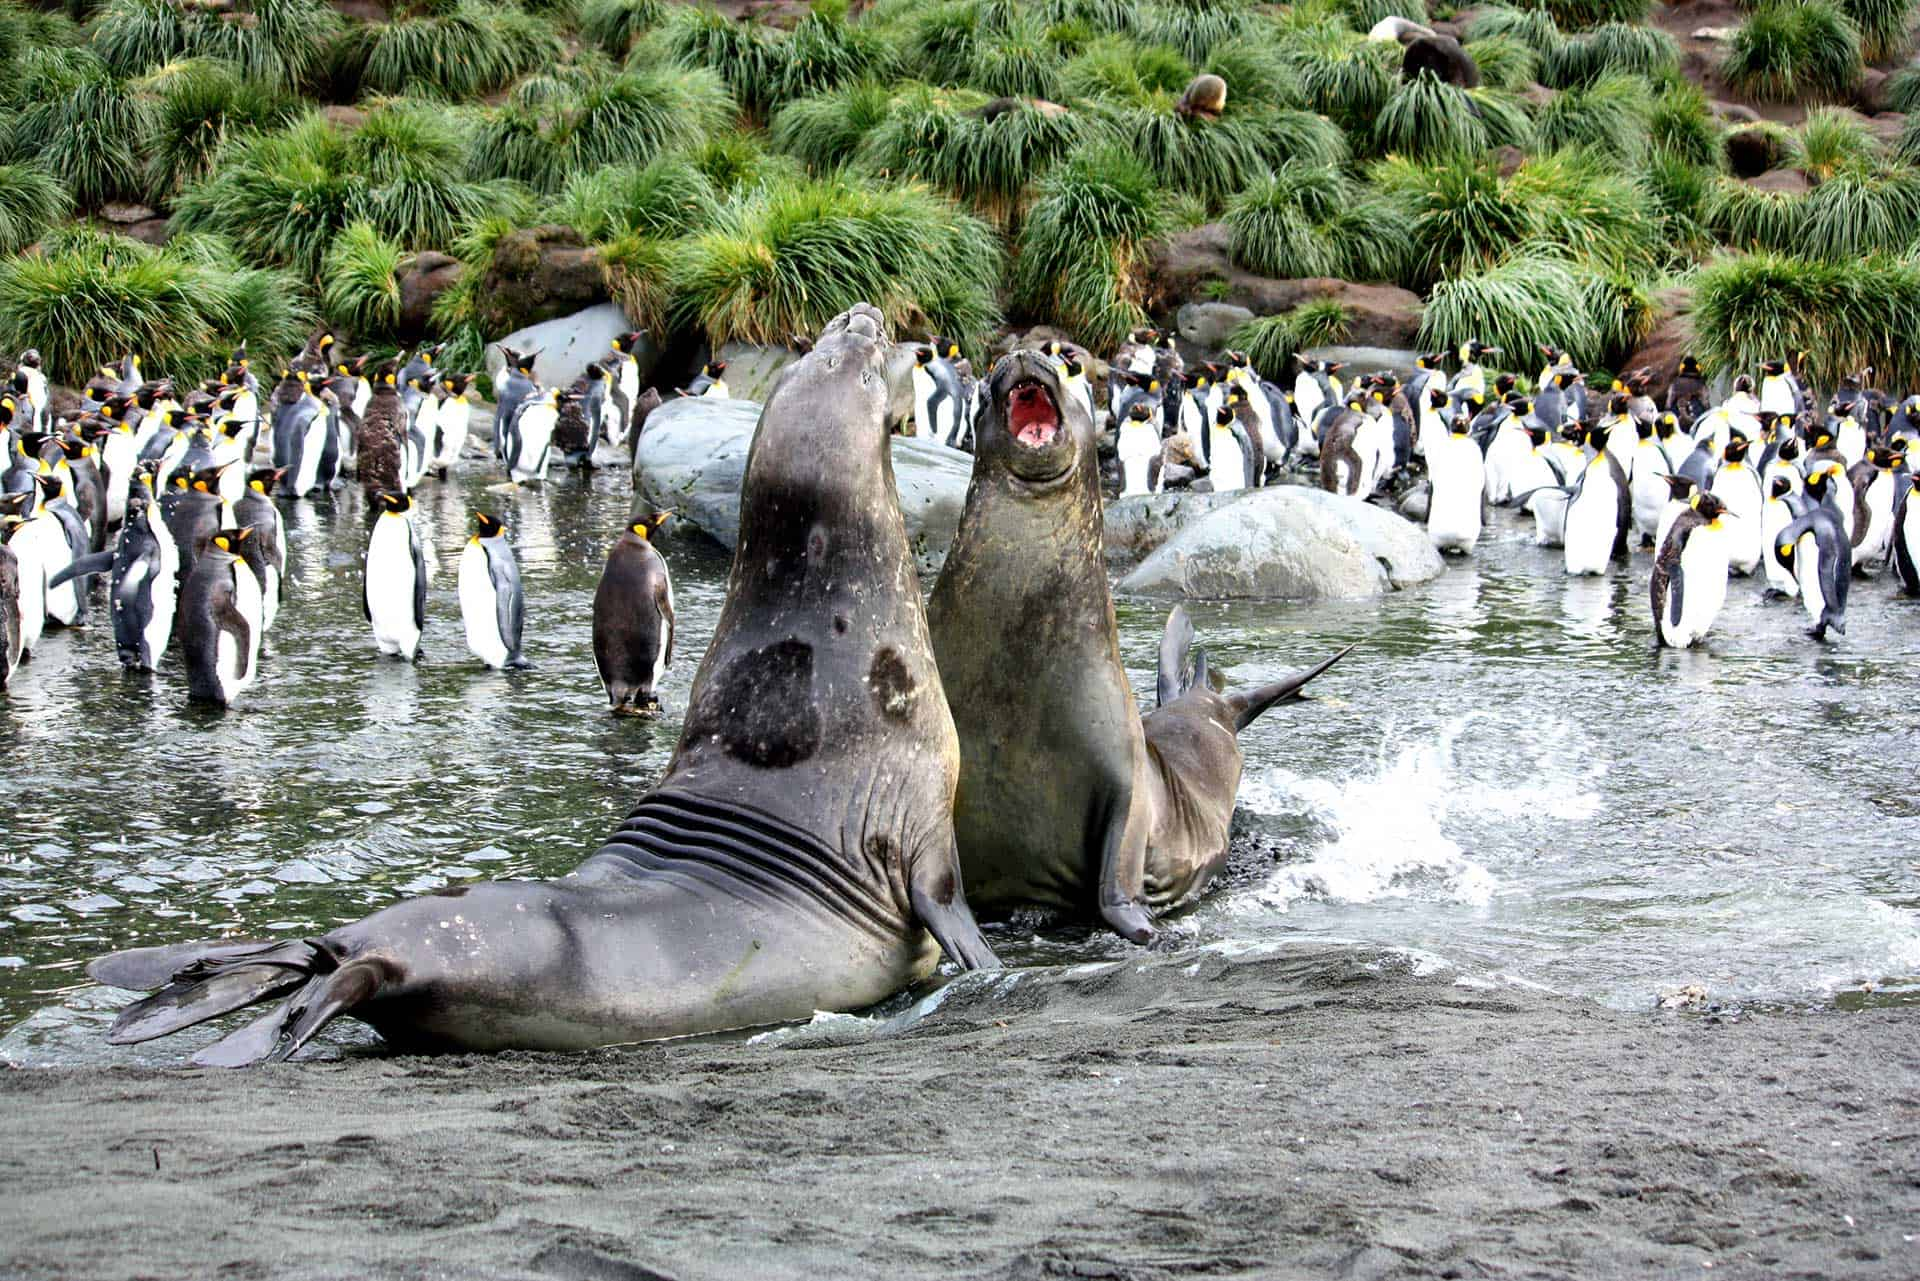 Elephant Seals in heated discussion